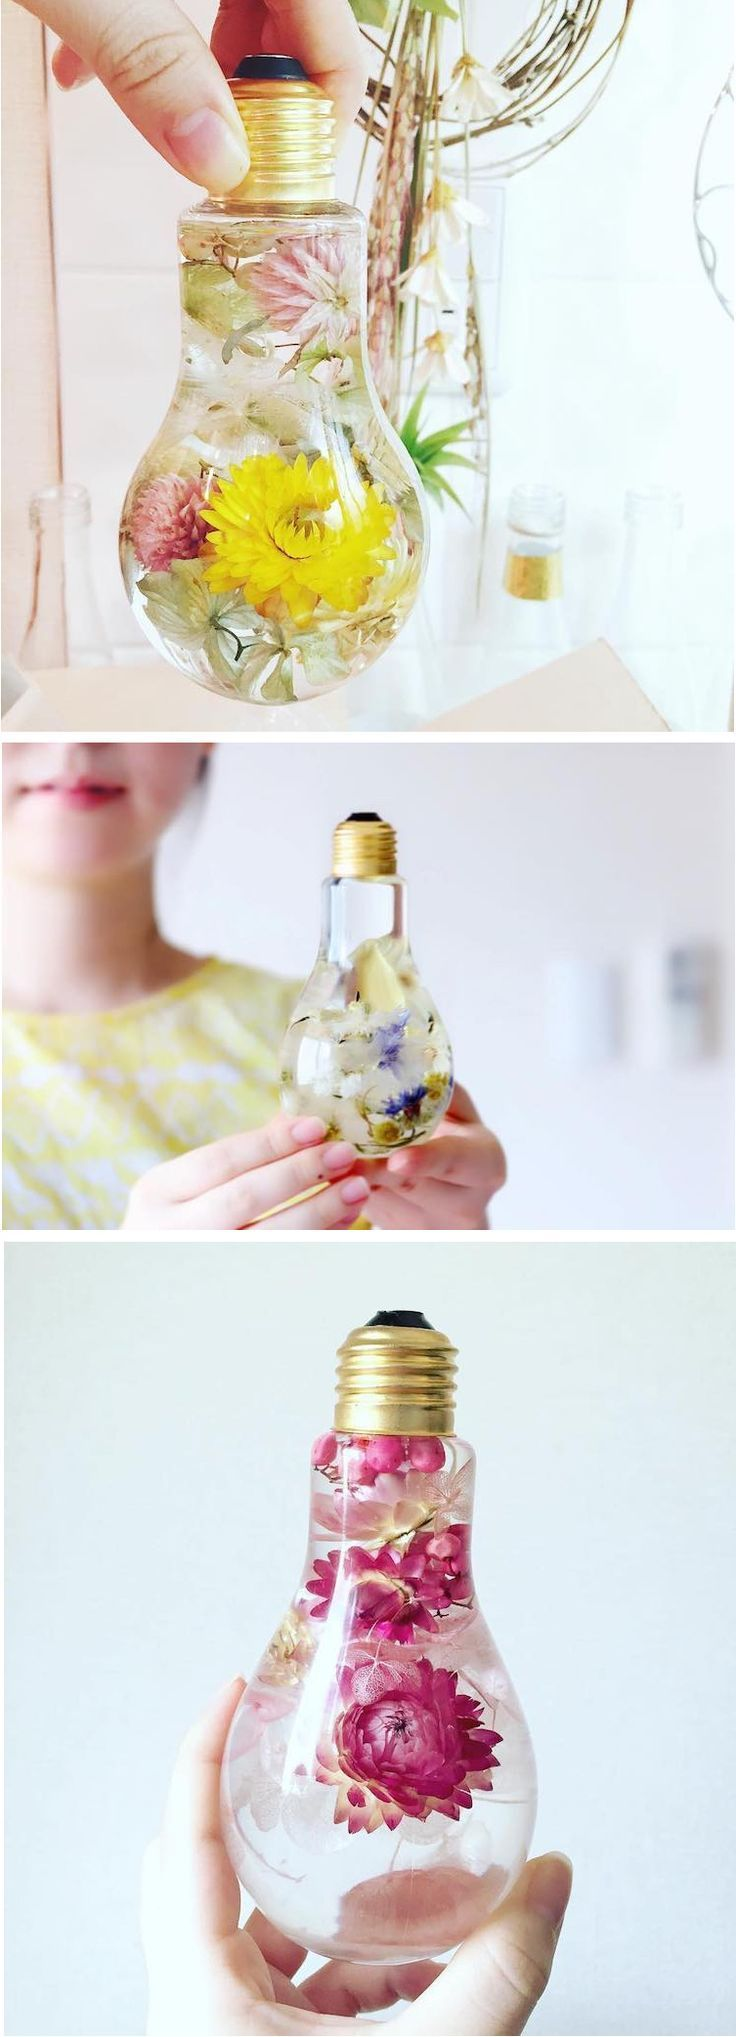 25 best ideas about light bulb art on pinterest light - Artesanias para decorar el hogar ...